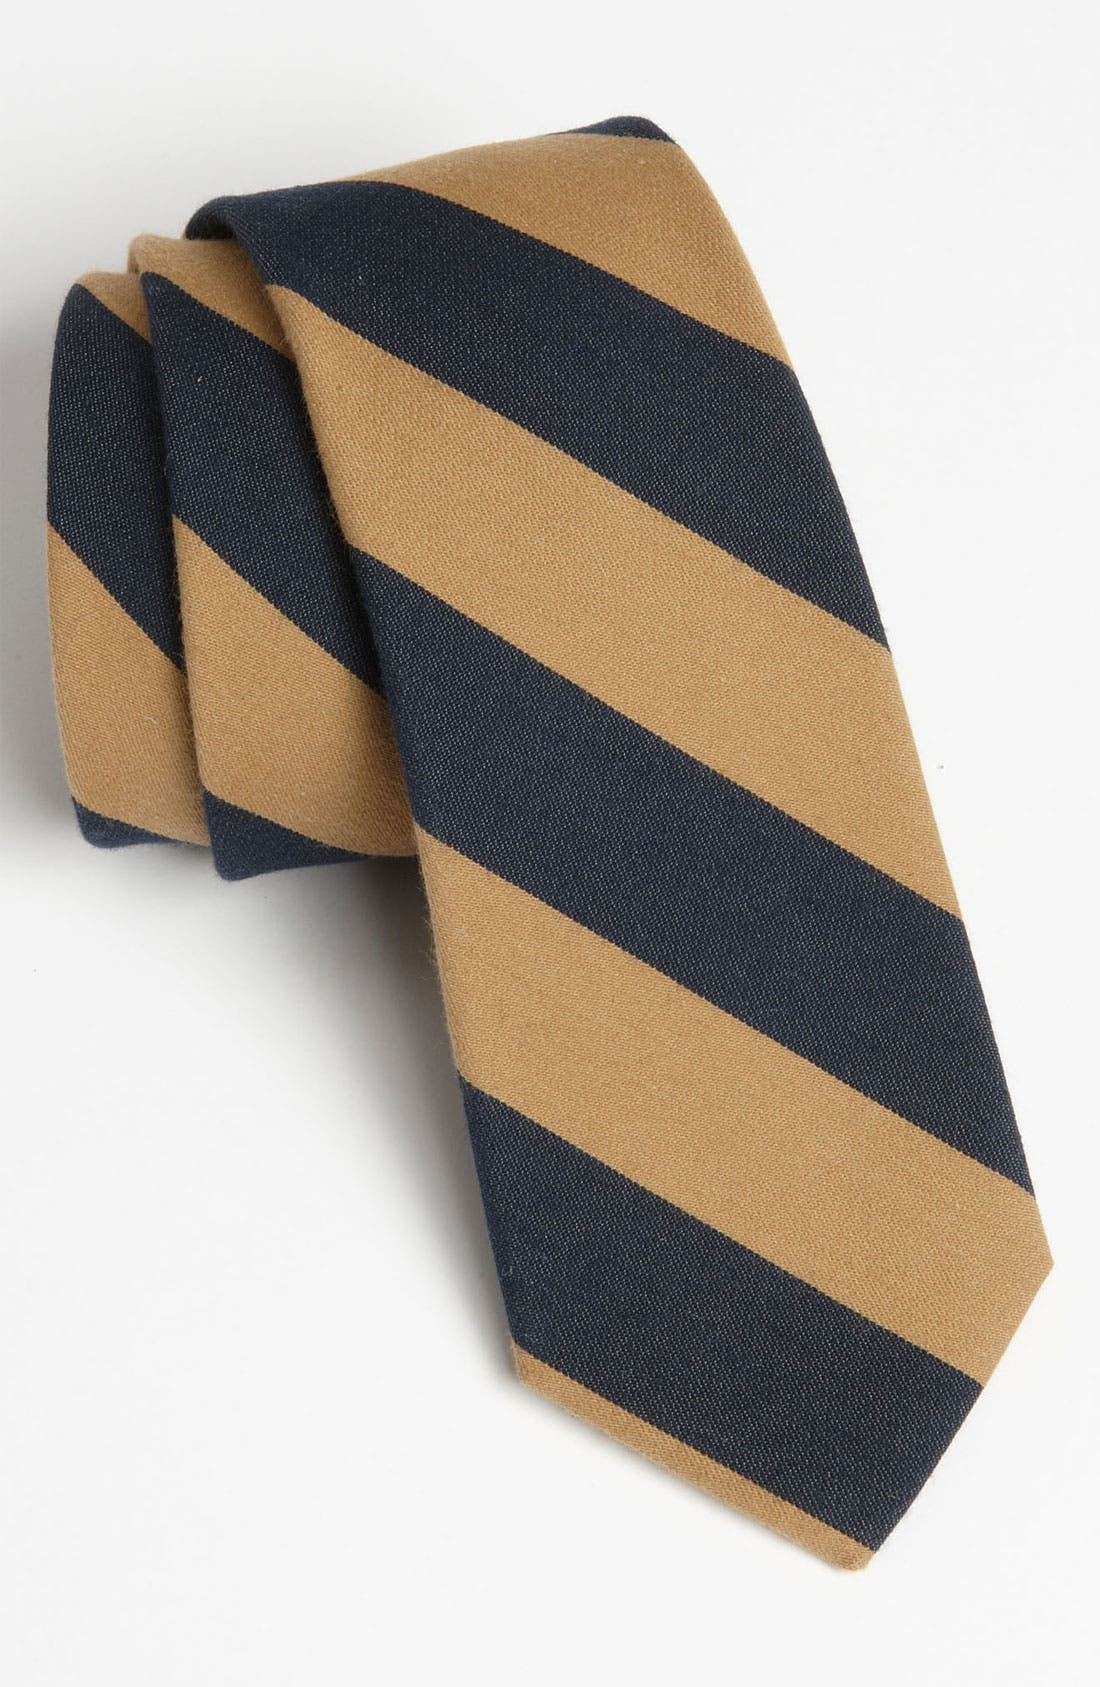 Alternate Image 1 Selected - Gitman Woven Tie (Online Only)